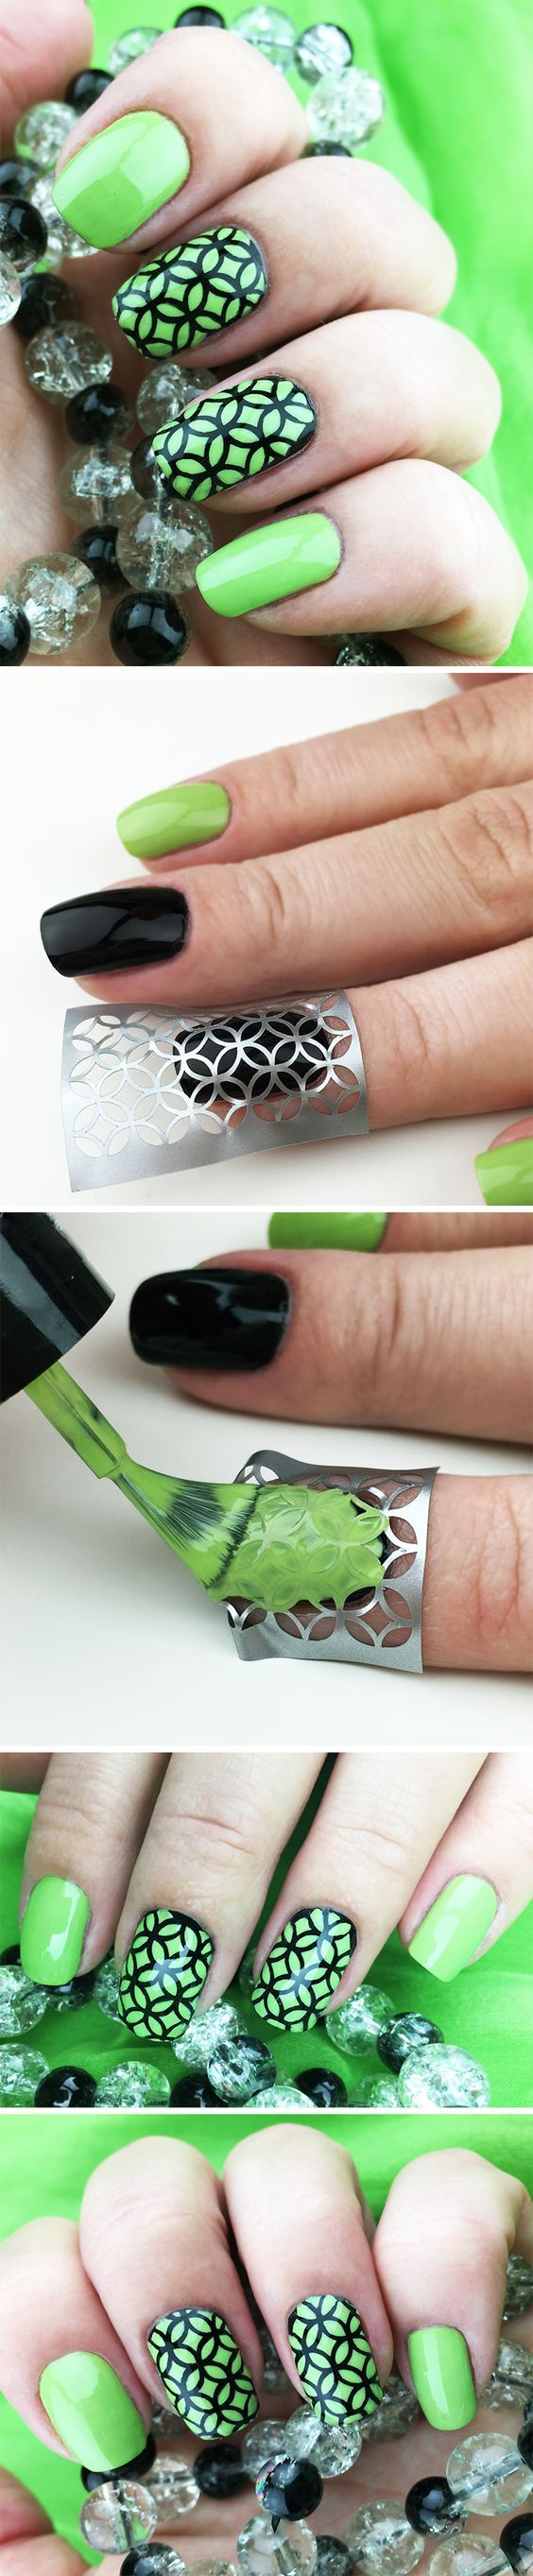 9 best Short nails images on Pinterest | Christmas nails, Creative ...